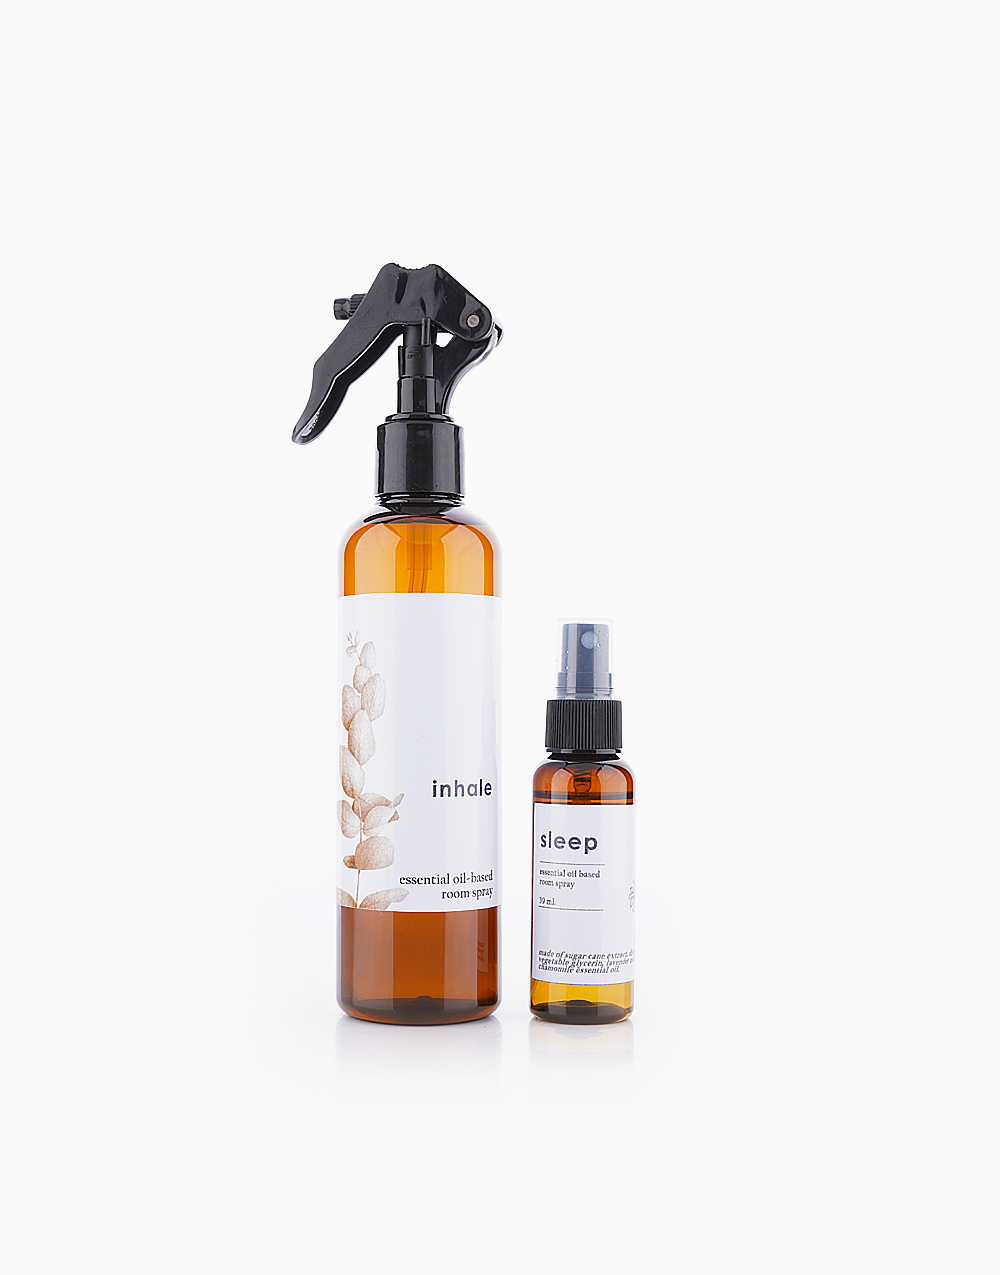 Inhale Natural Room Spray Bundle (212ml + 39ml Sample Spray of Another Scent) by Calyx Life & Home